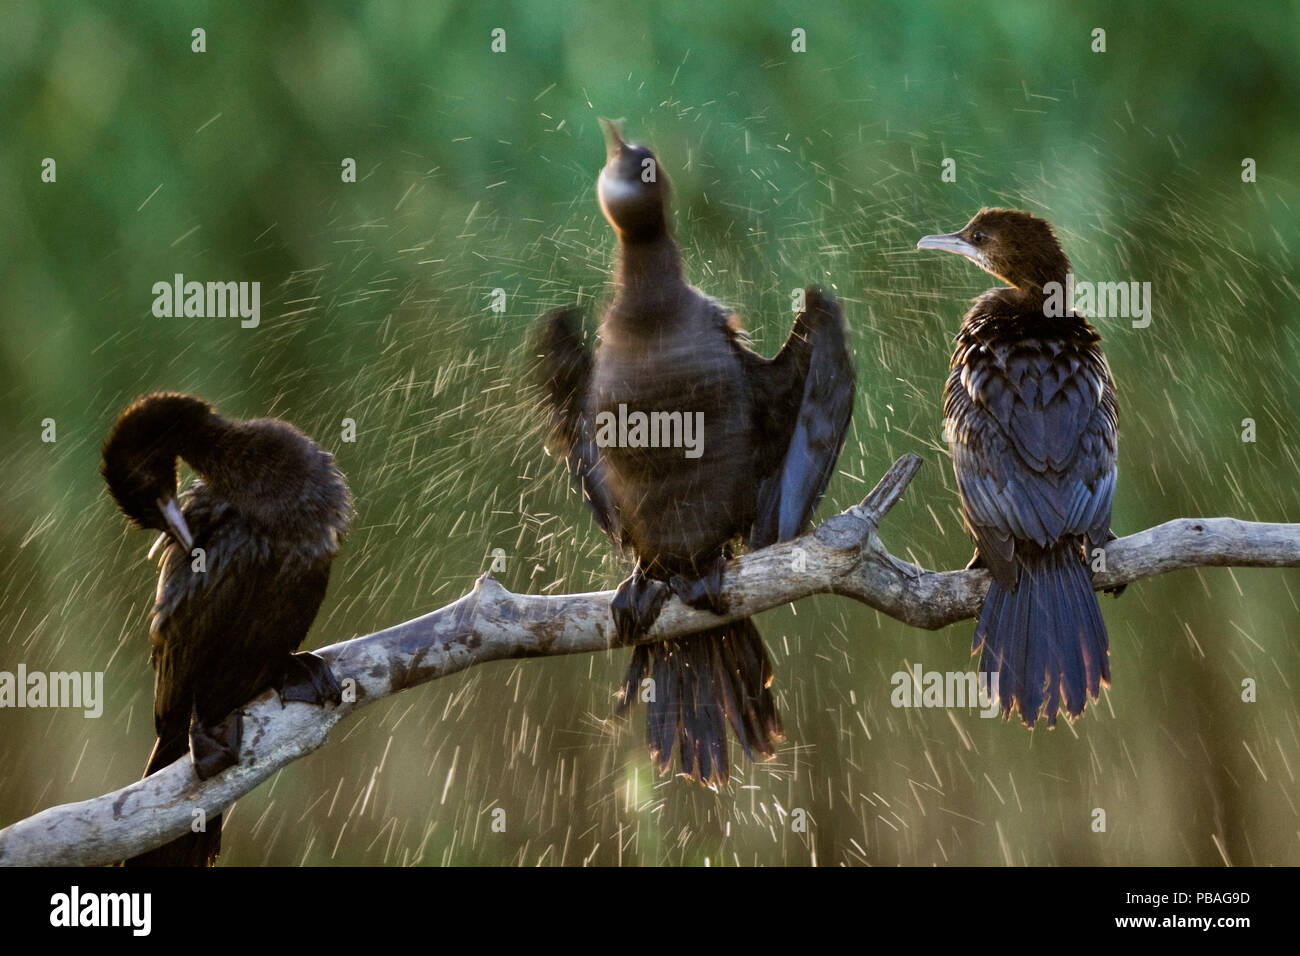 Three Pygmy cormorants (Microcarbo pygmeus) drying themselves, one by shaking off water, Hortobagy National Park, Hungary - Stock Image